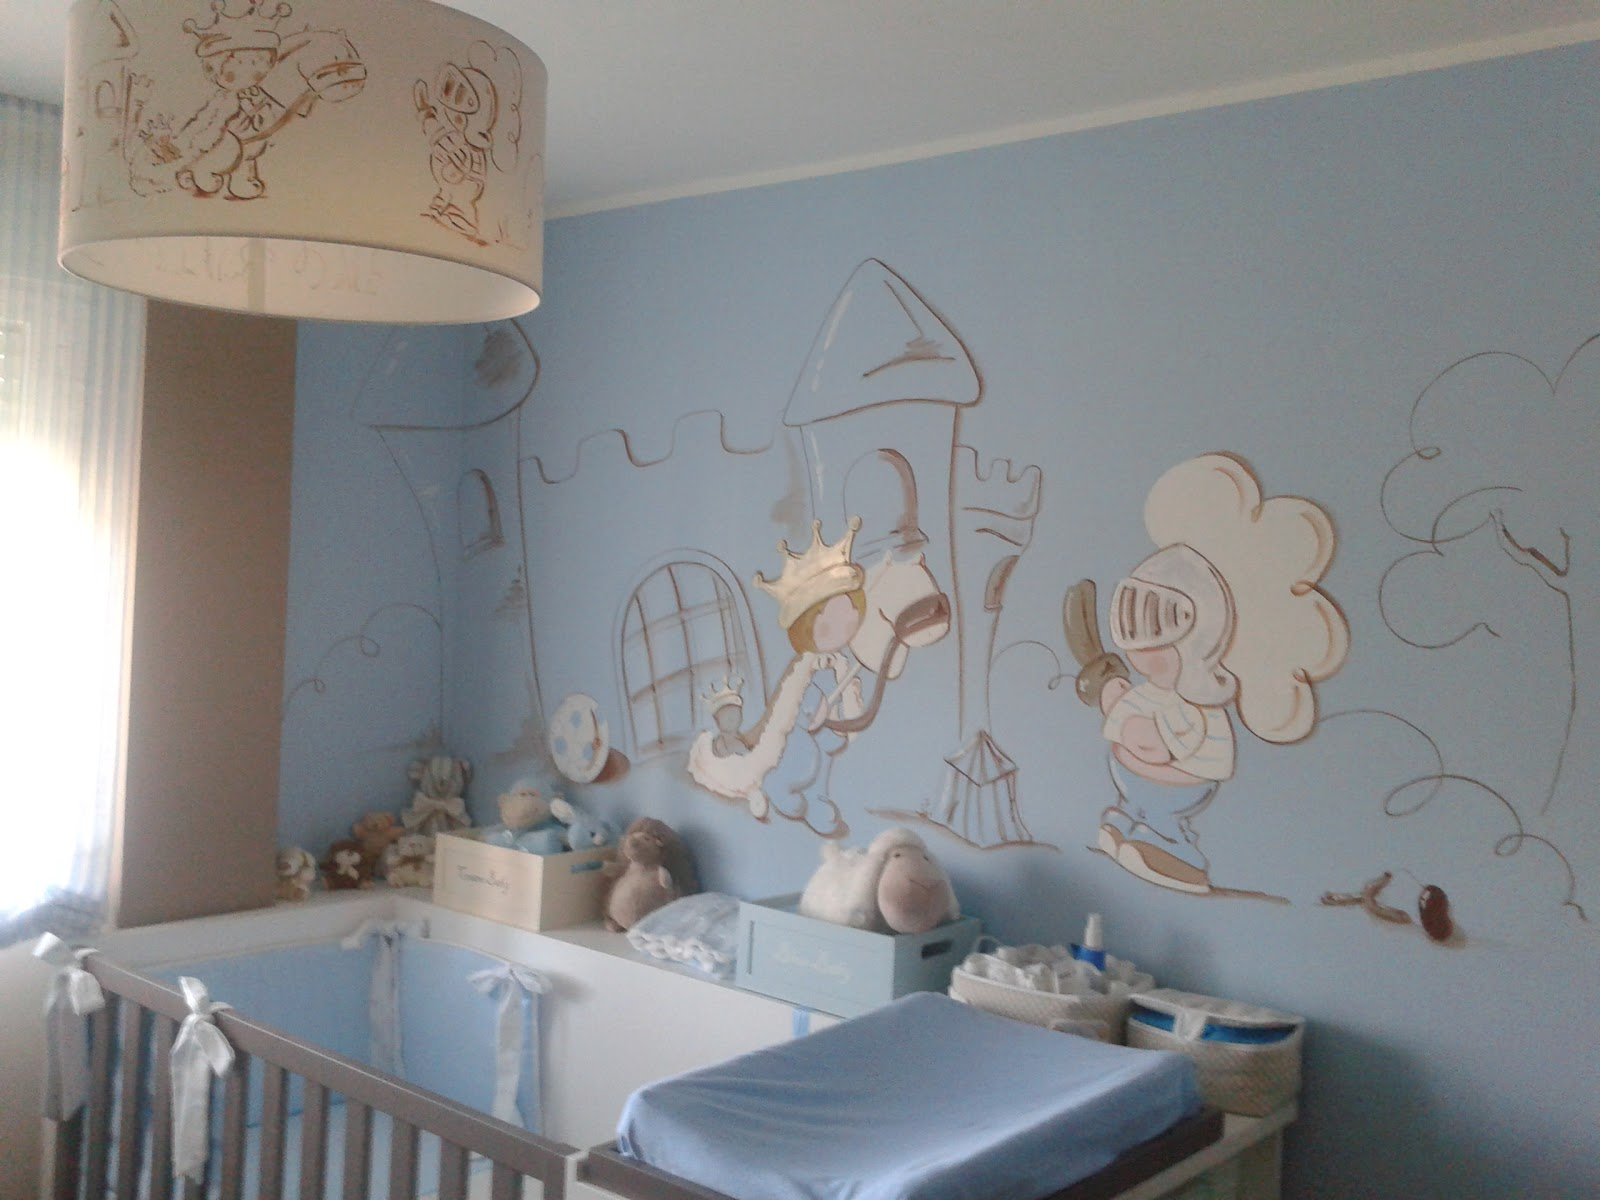 Deco murale chambre bebe fille for Decoration murale chambre bebe